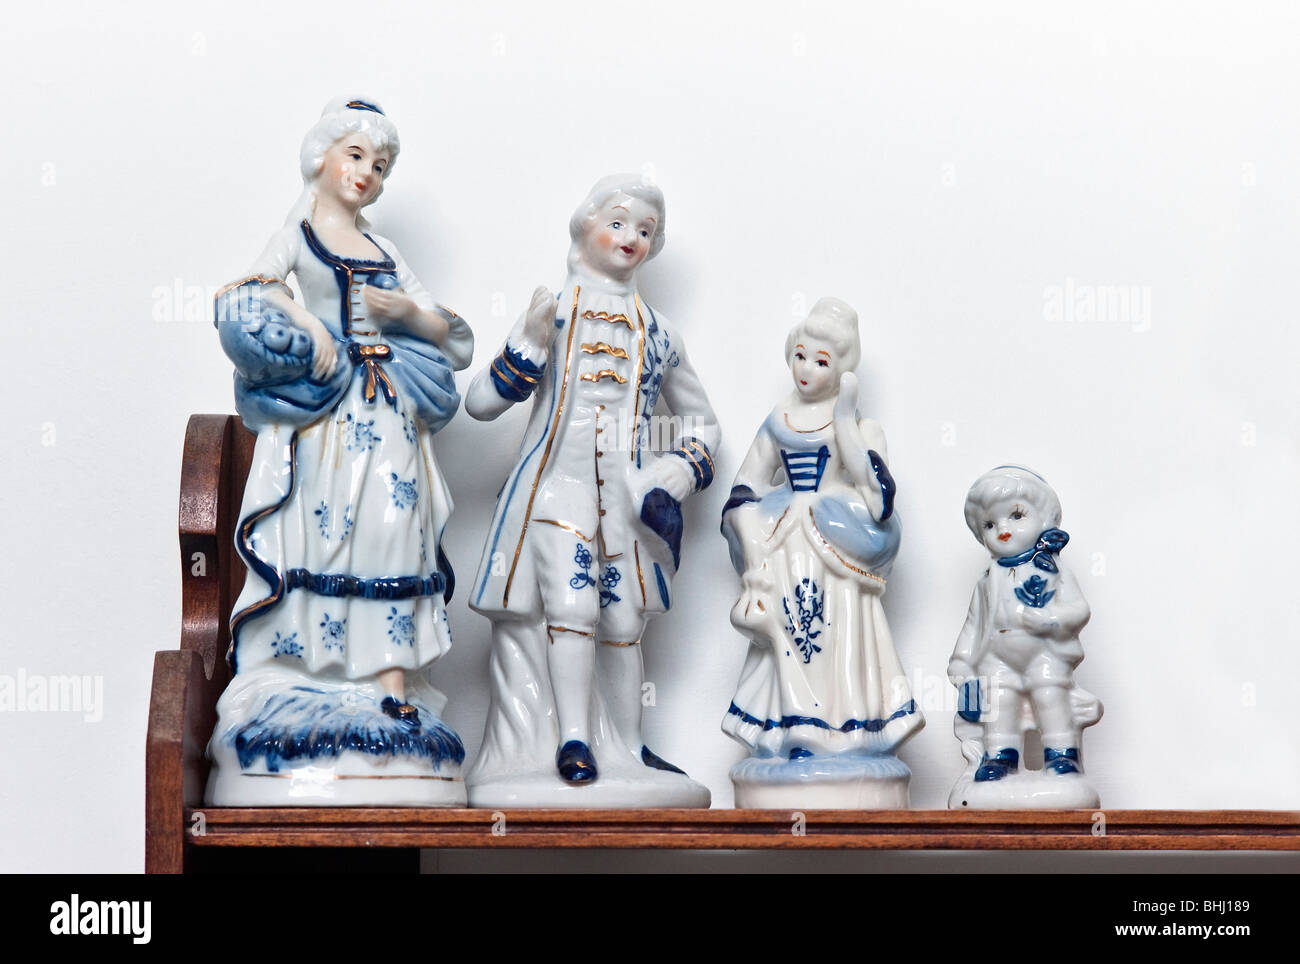 A set of small blue and white china period figurines on a shelf - Stock Image